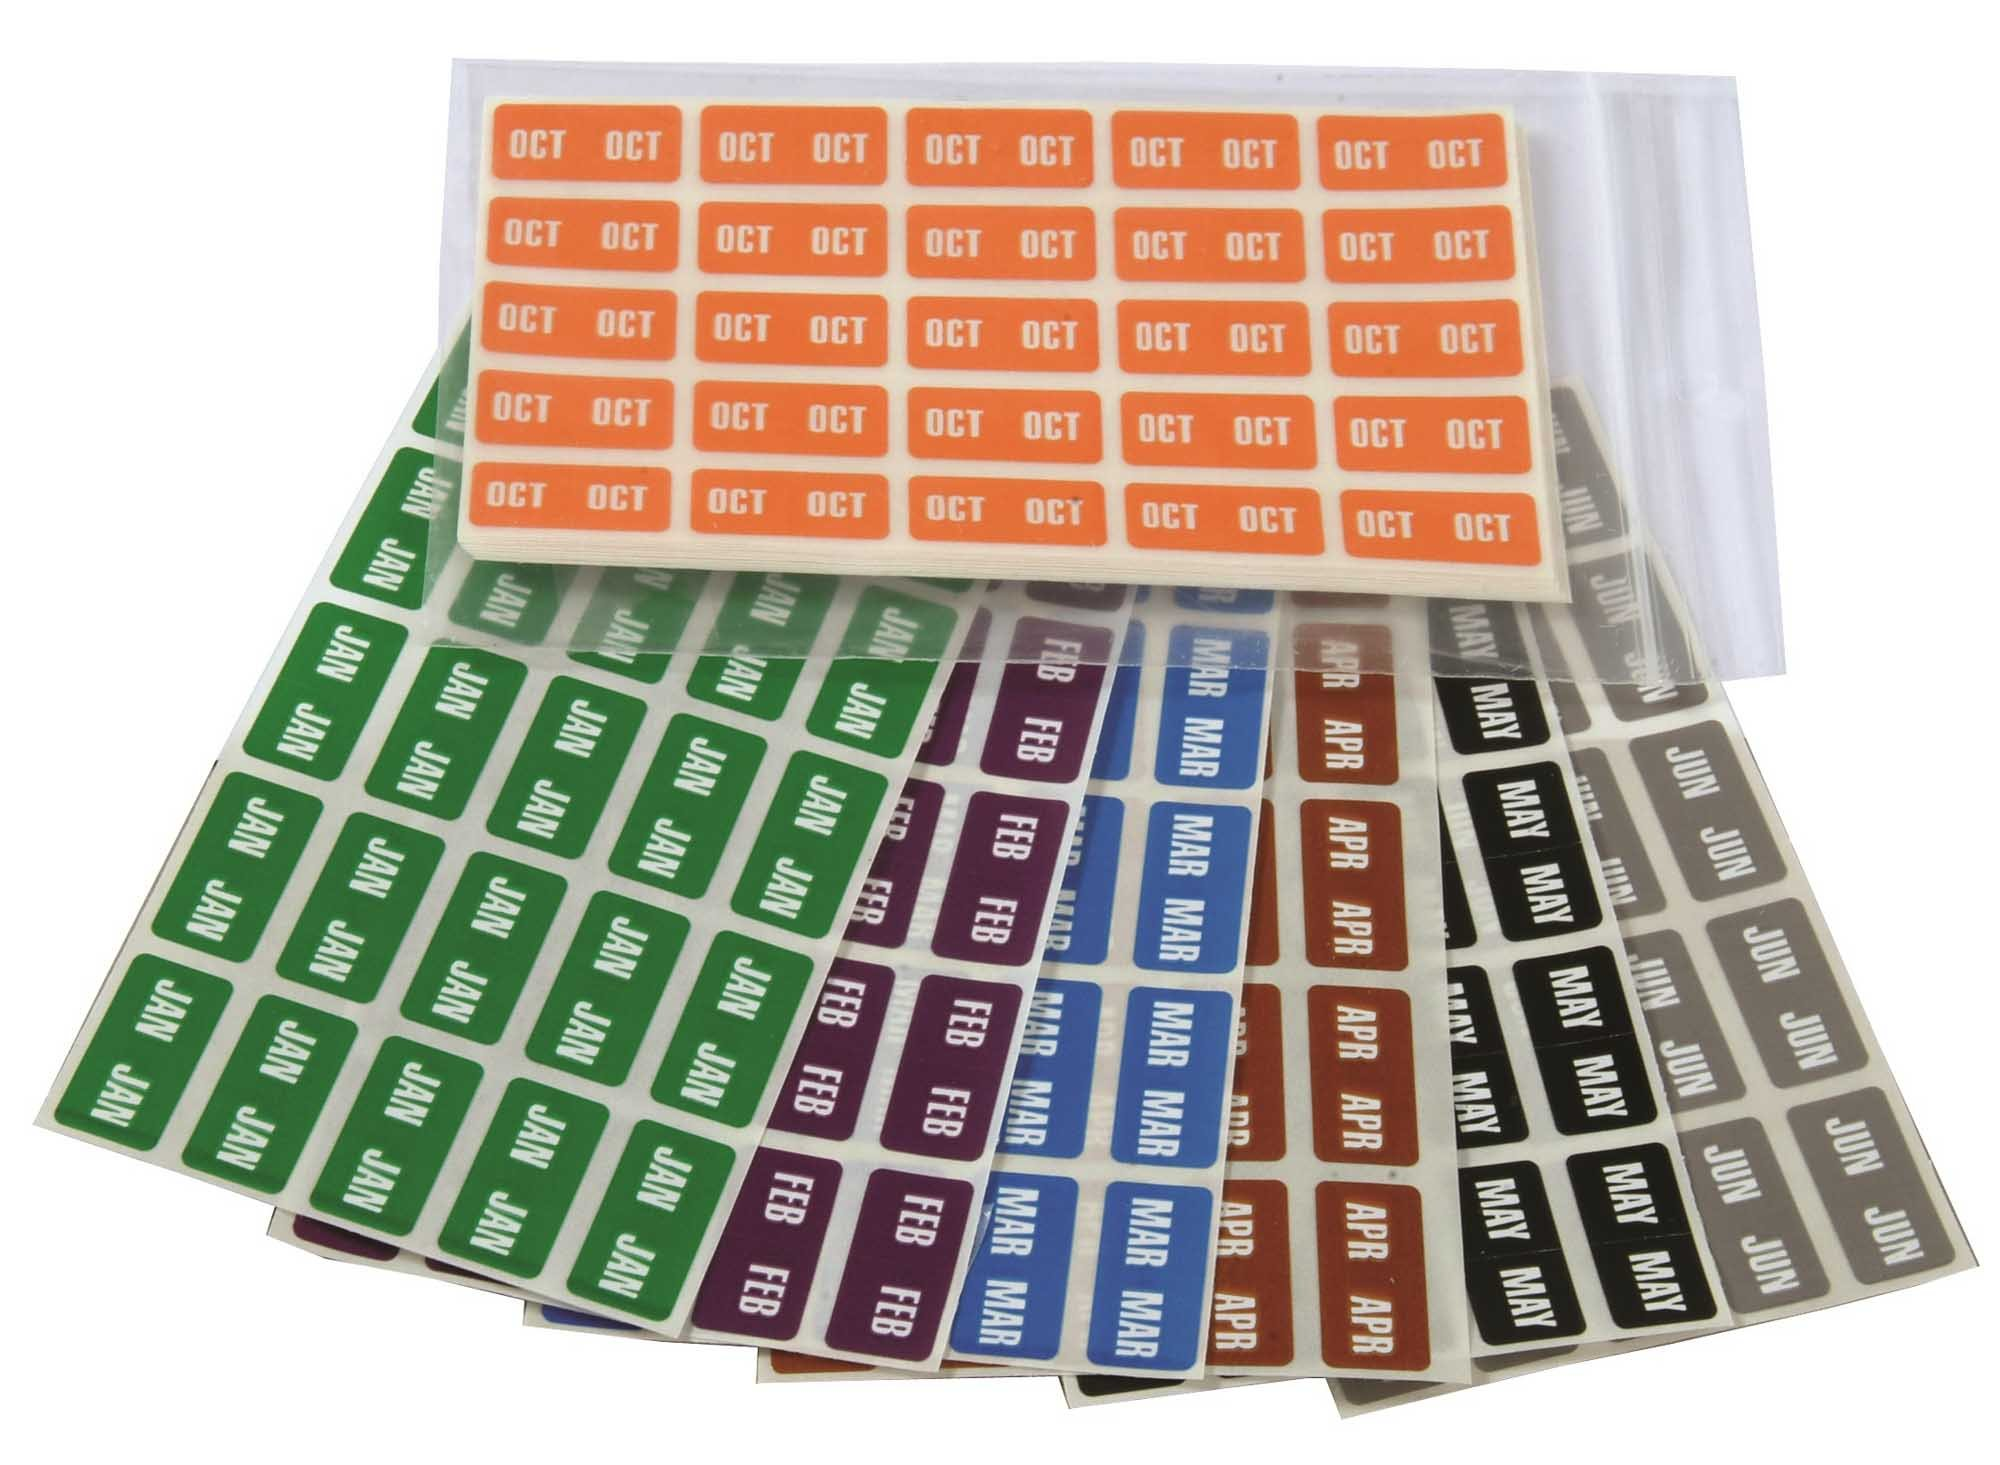 Smead ETS Match SMMK Series Month Sheet Labels - Set of January to December